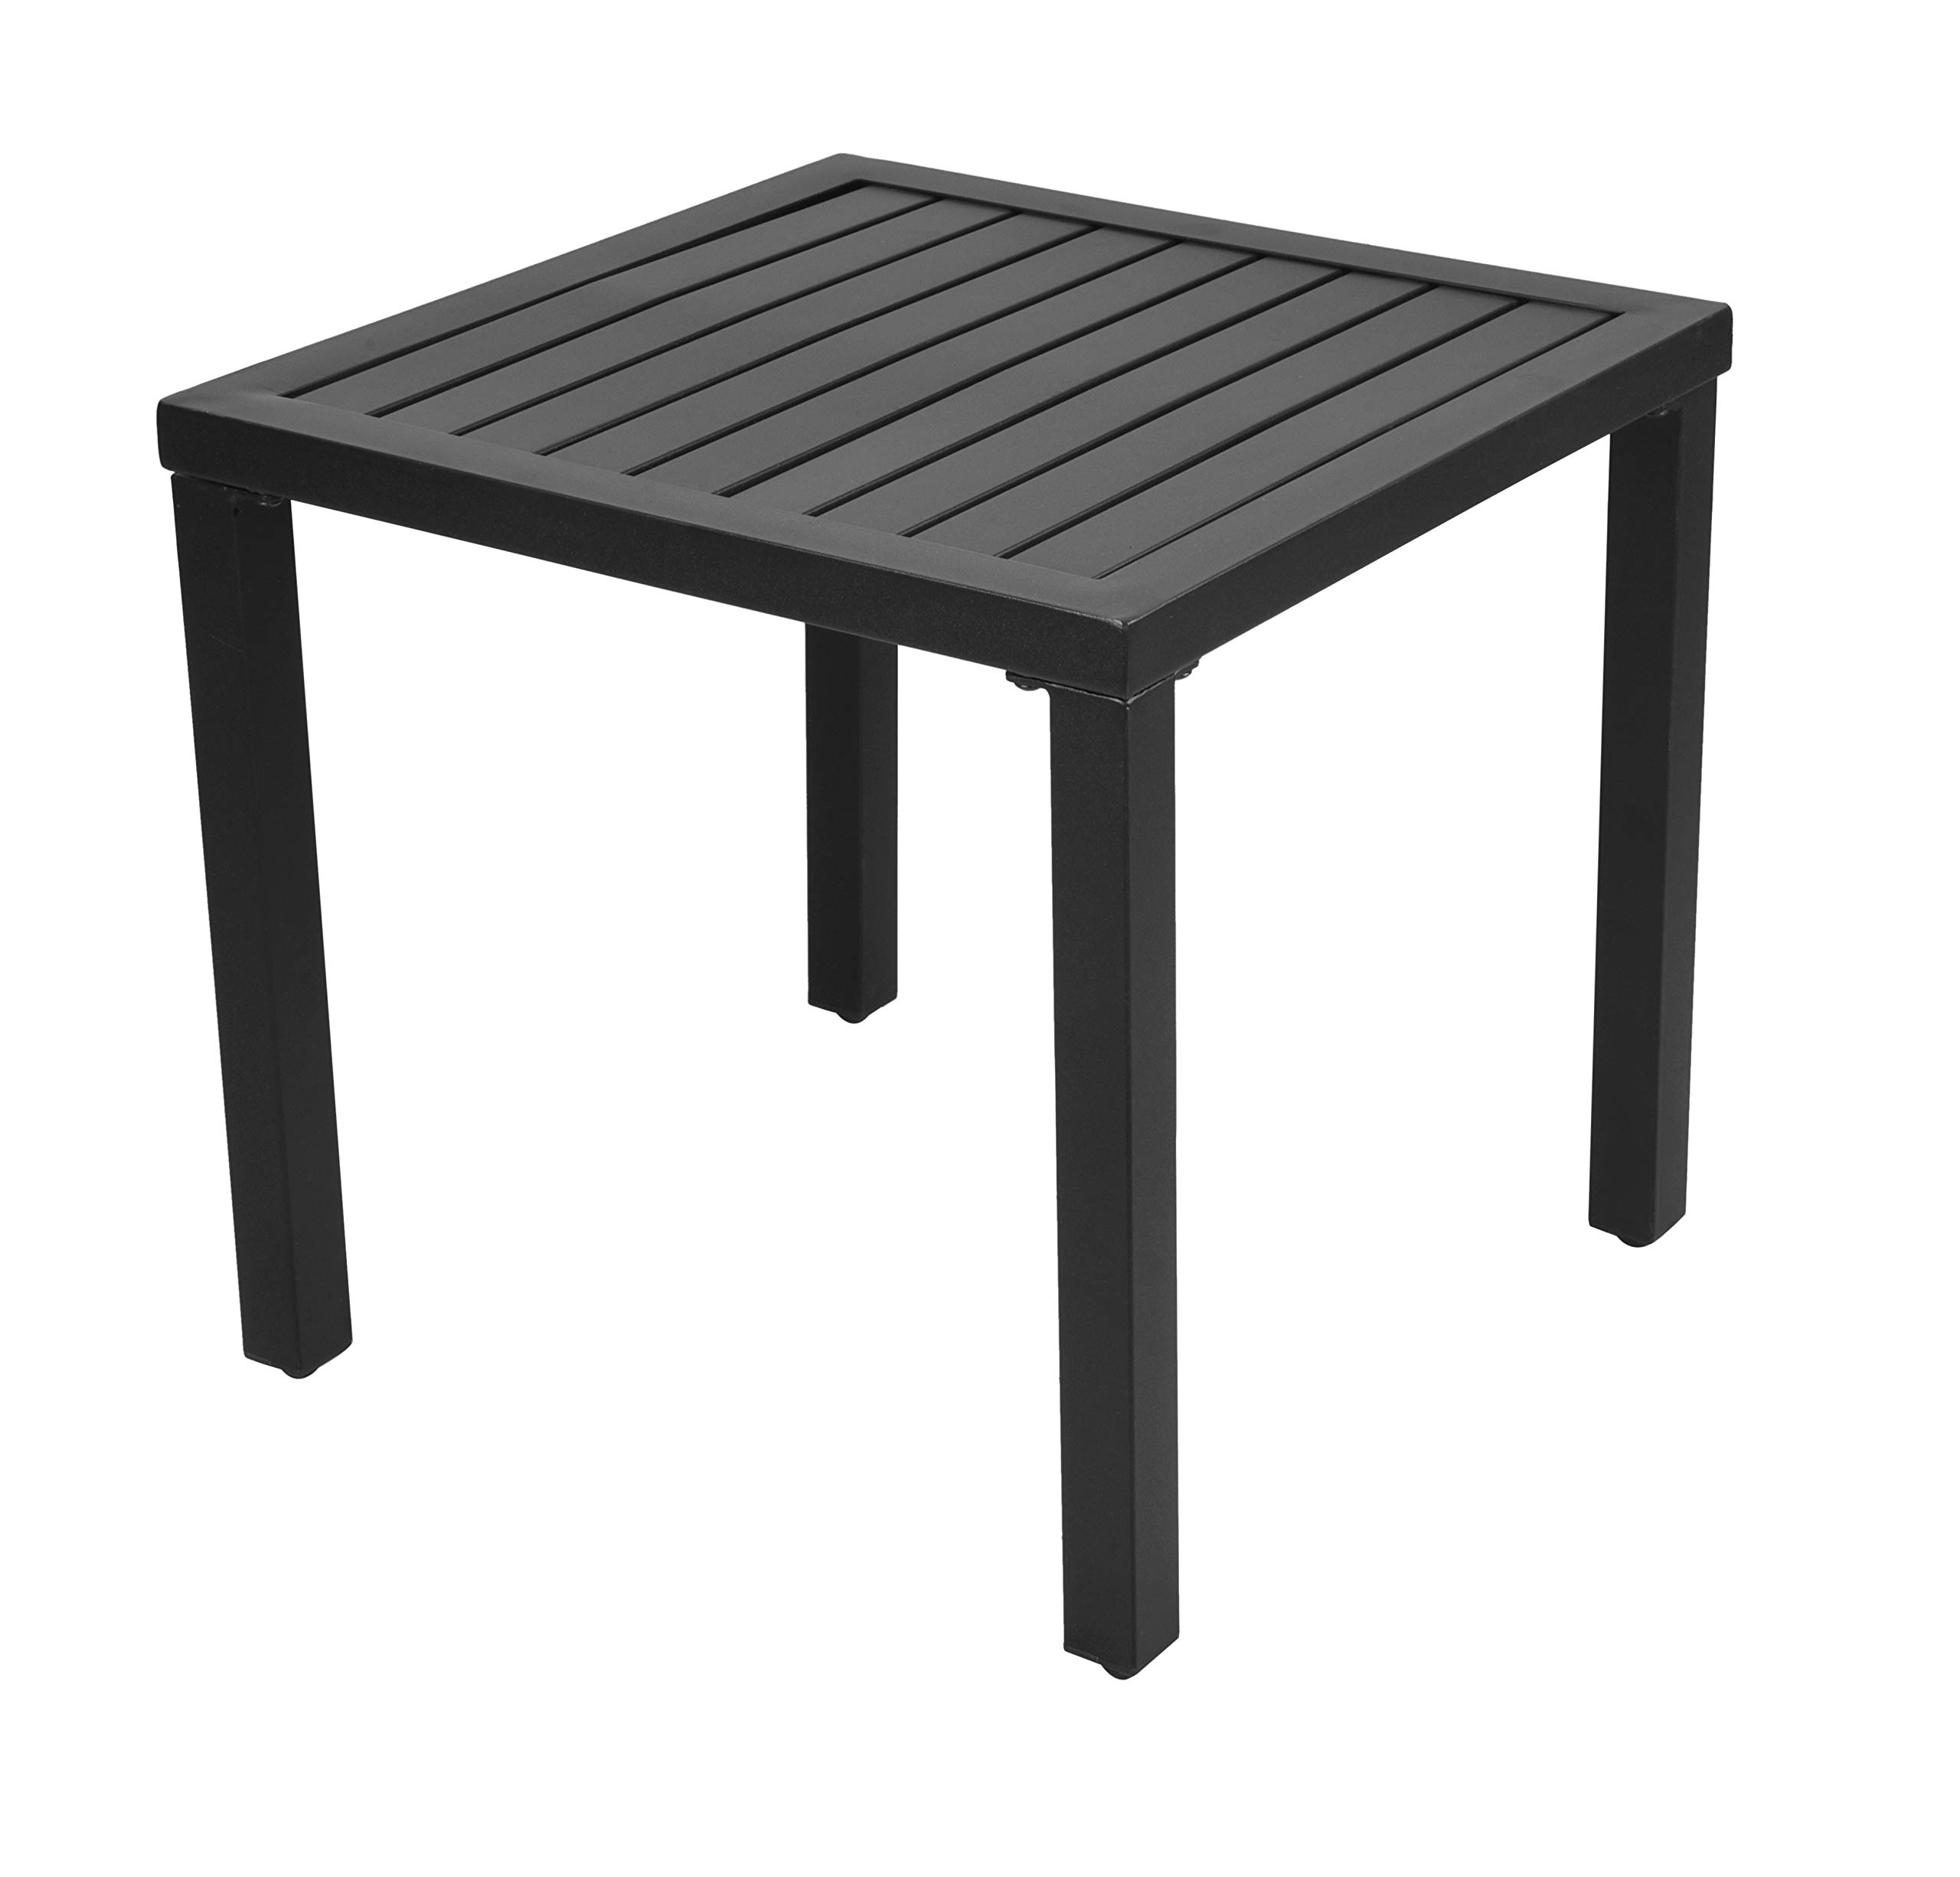 EMERIT Outdoor Metal Square Patio Bistro Side End Table,Black by EMERIT (Image #1)